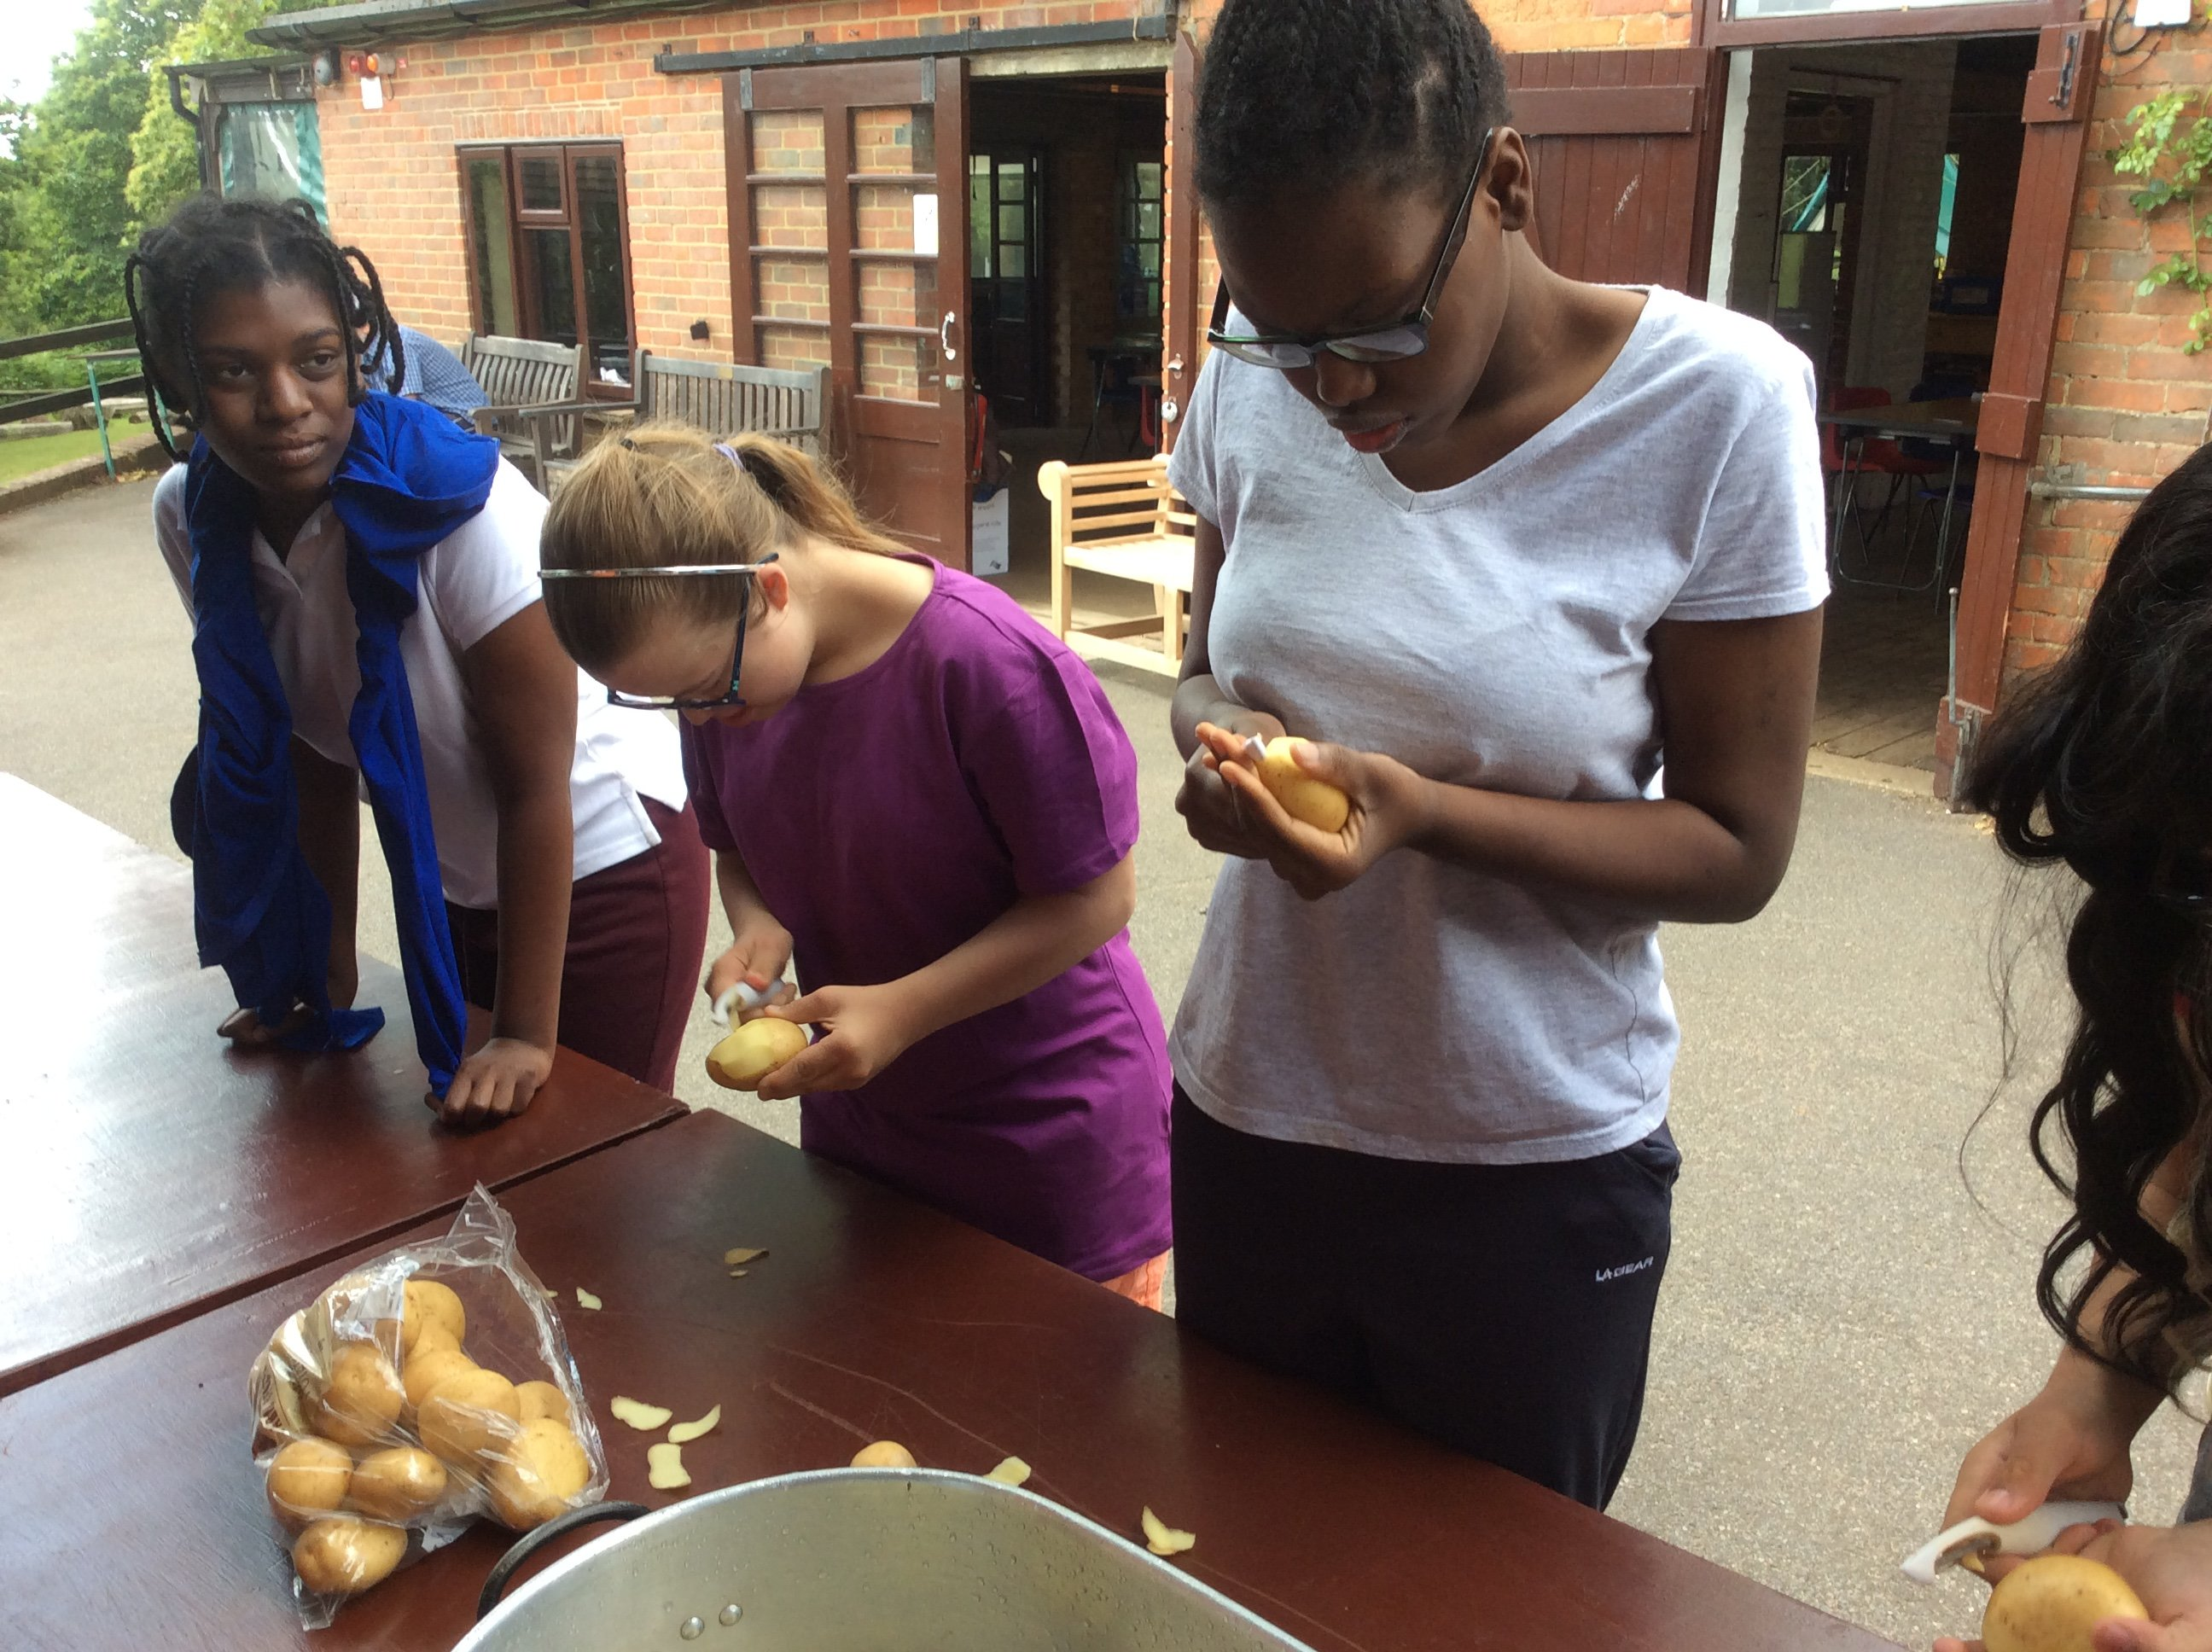 Students cooking outside at residential